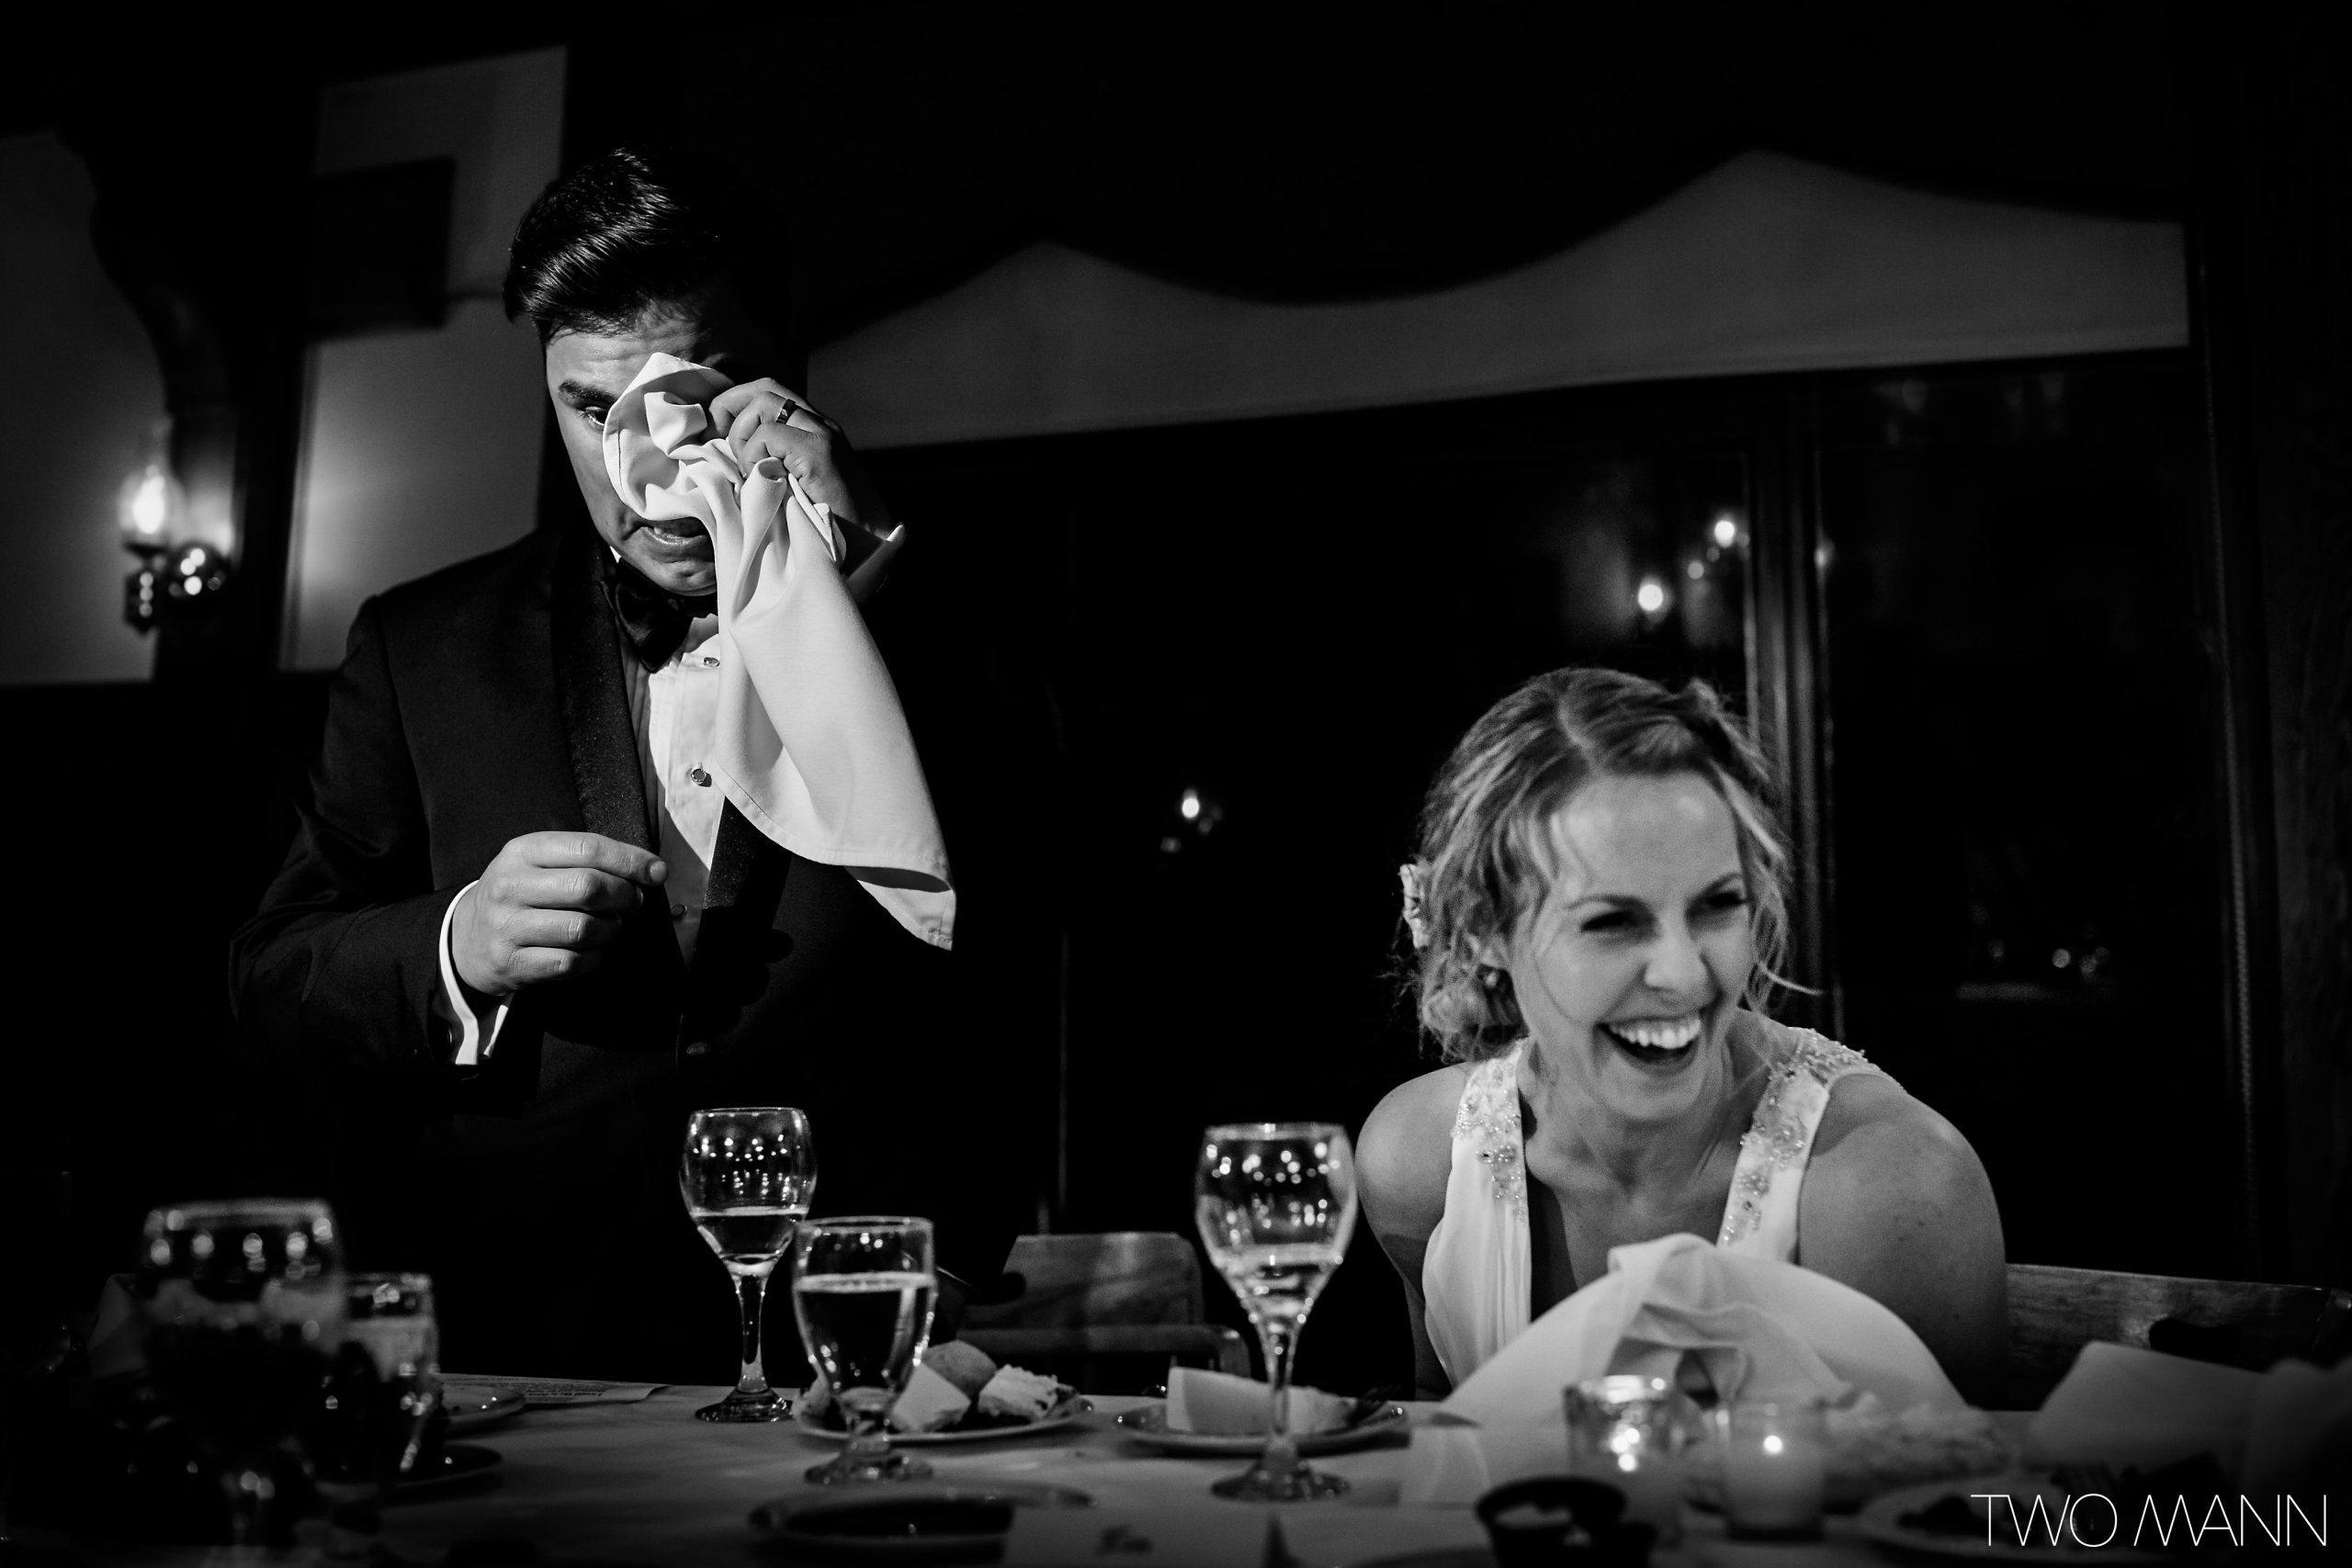 tearful groom and smiling bride at wedding table